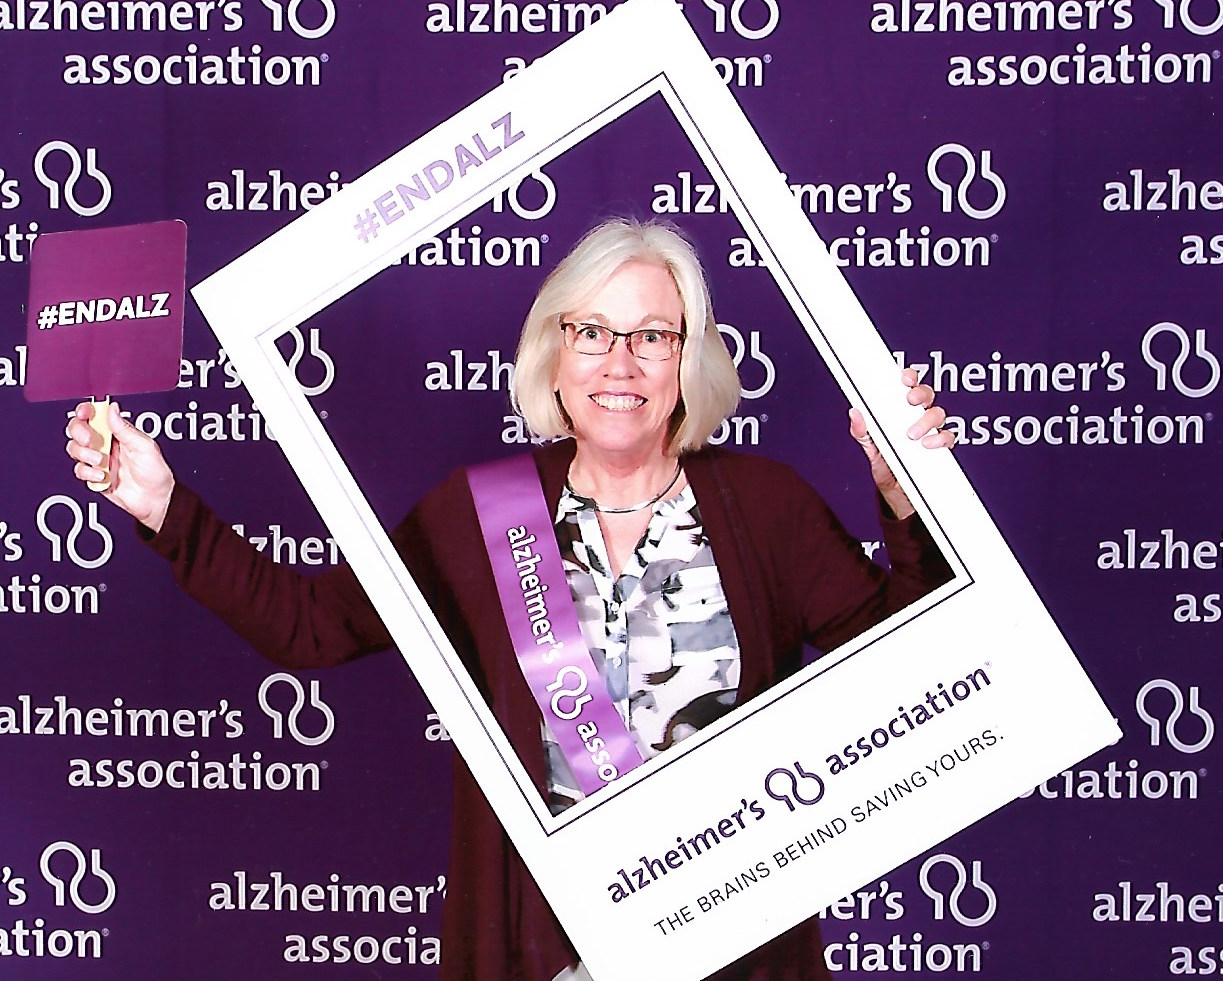 When My Mom Was Diagnosed With Alzheimers, I Felt So Alone pictures